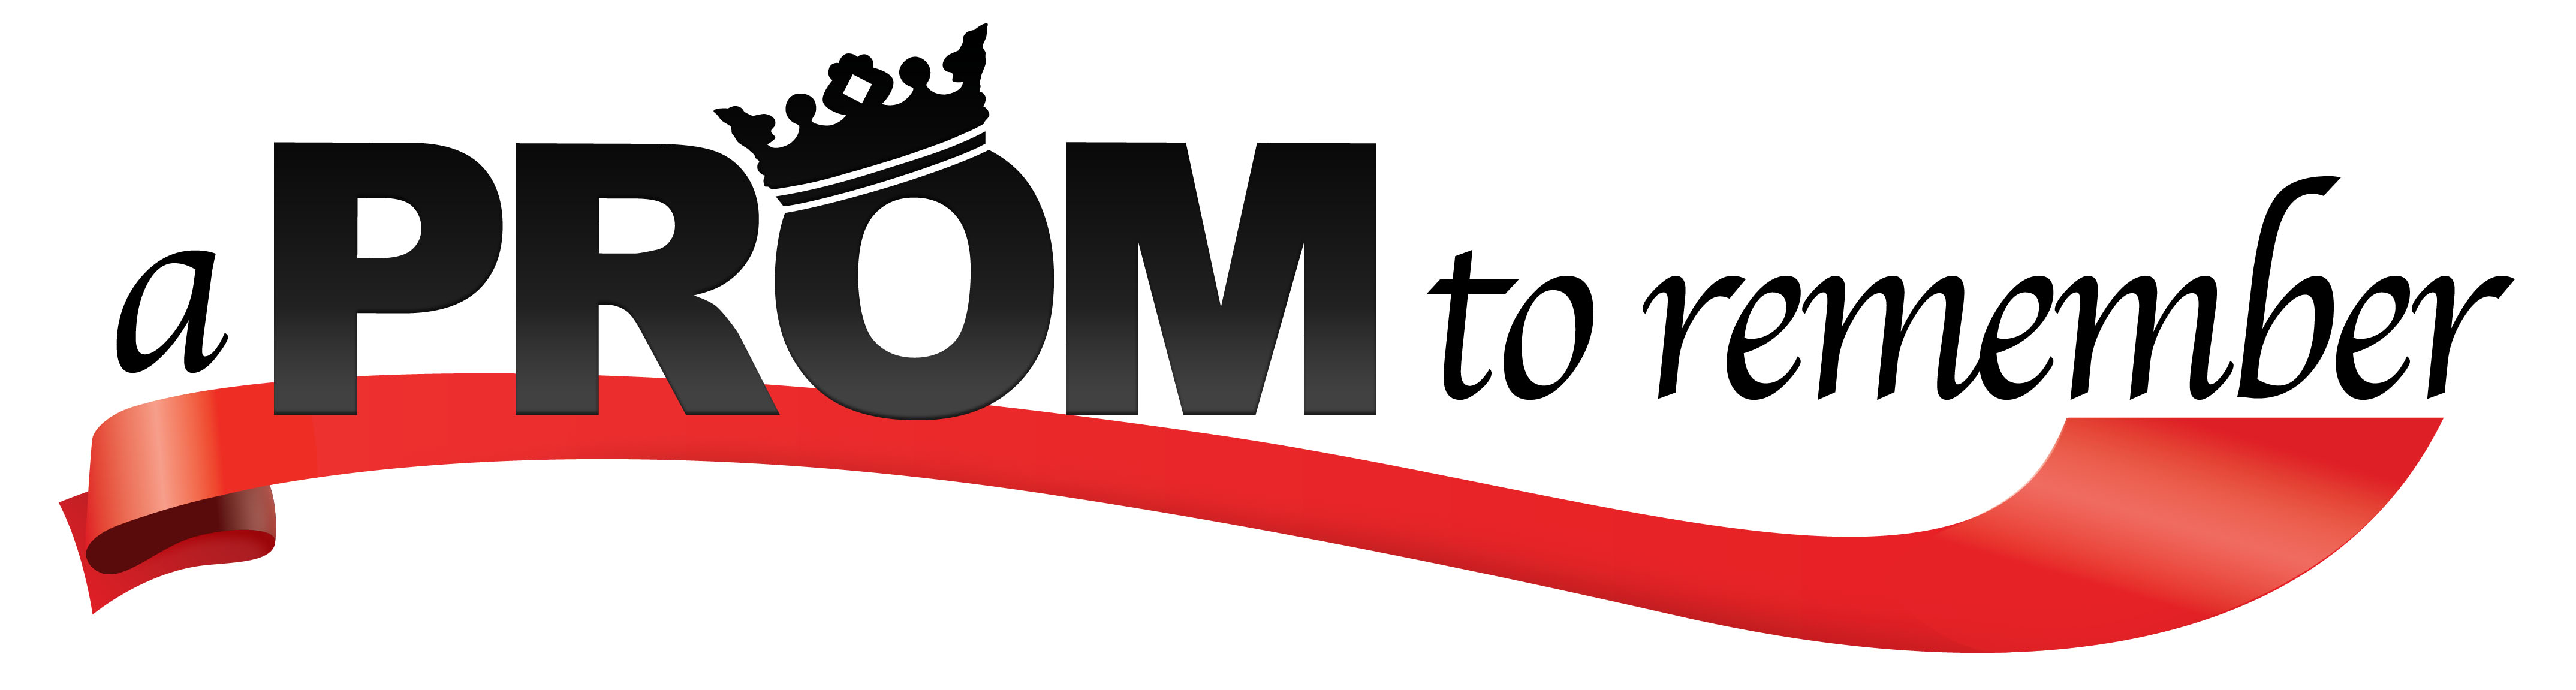 A_Prom_to_remember_logo